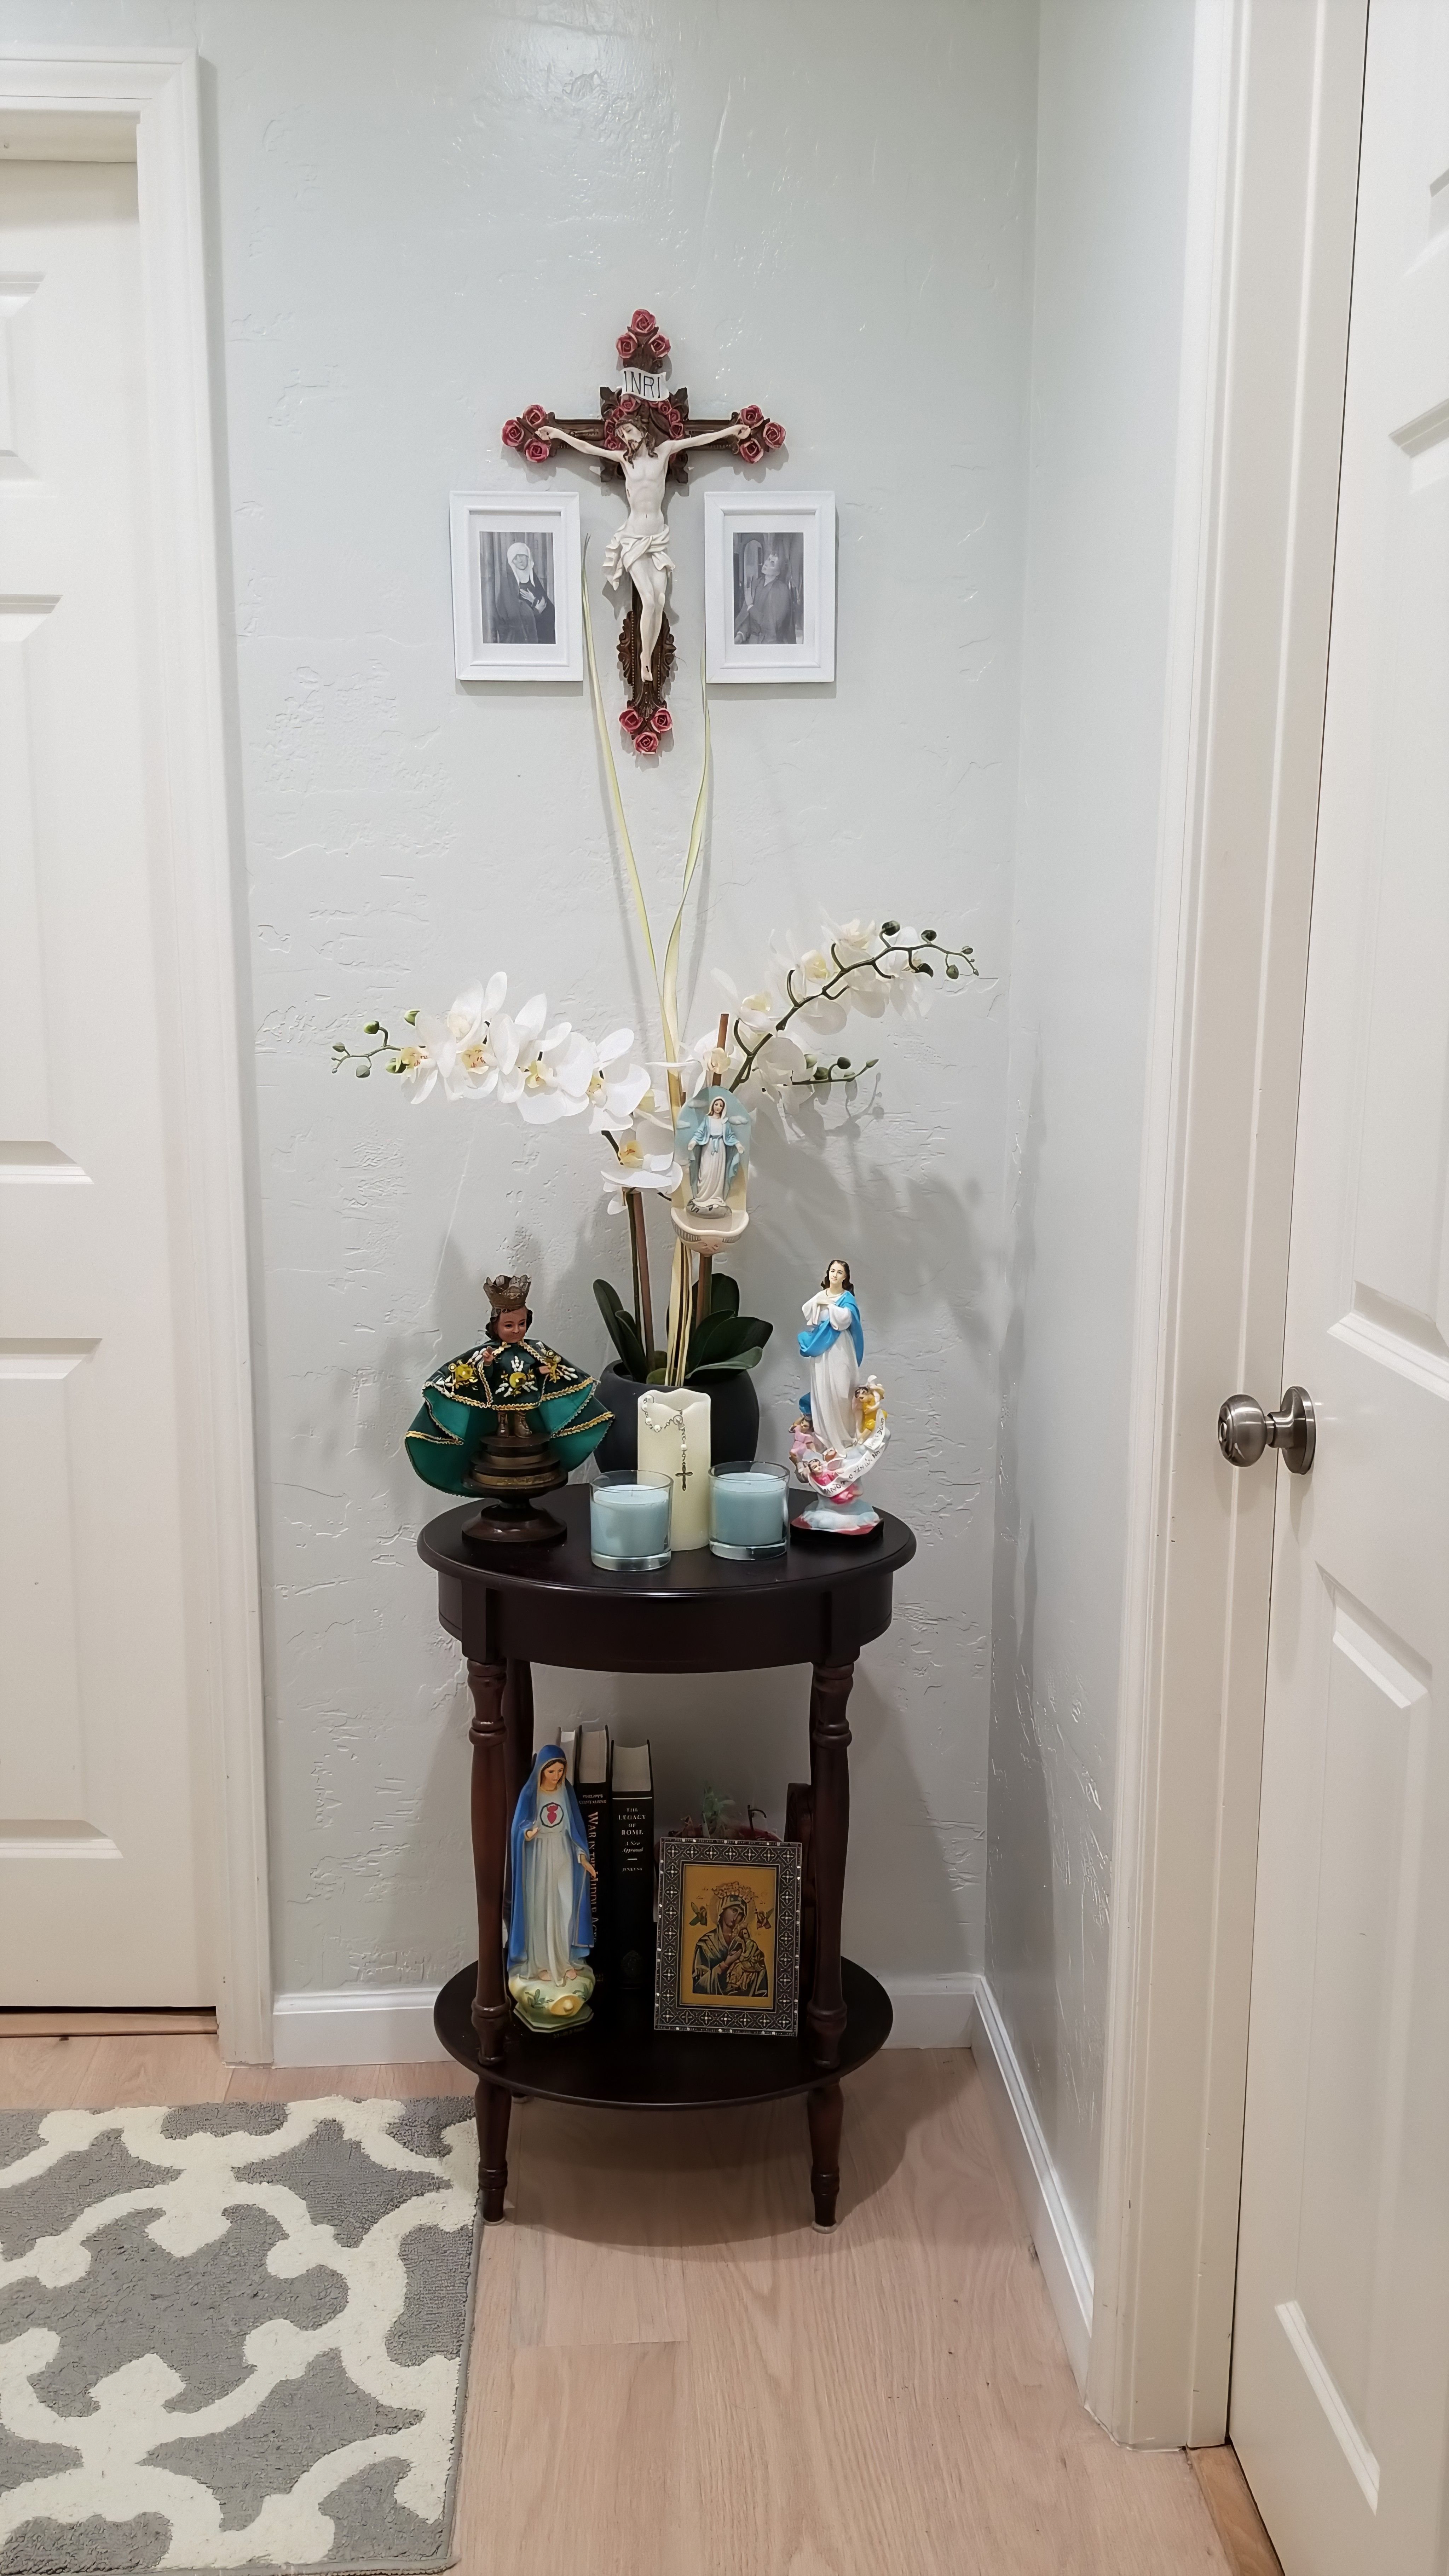 My Home Altar Prepared For A Lovely At Home Easter Sunday Home Altar Catholic Catholic Decor Catholic Wall Decor Catholic home decor dining room